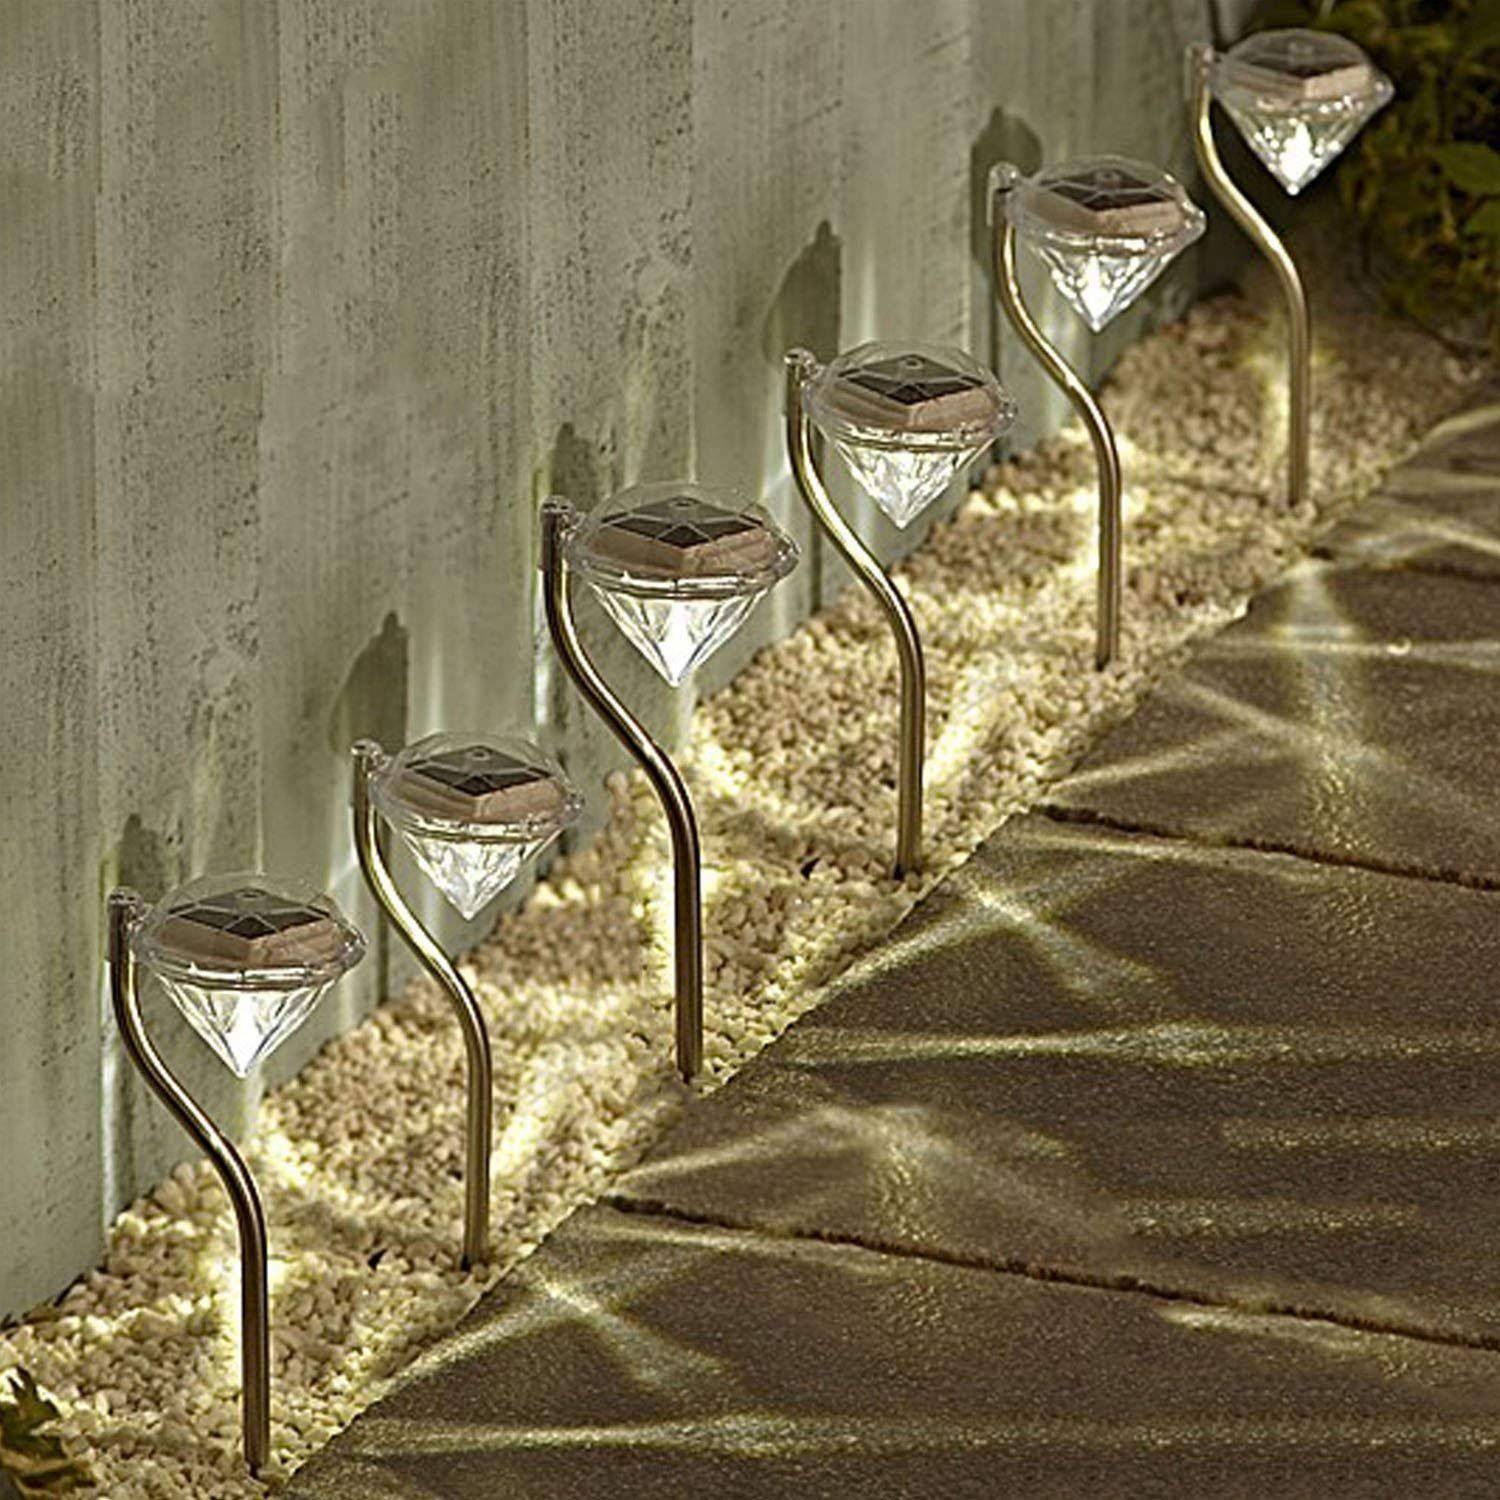 6 pcs Color-changing Diamond LED Solar Light Solar Garden Light Border or Path Backlight Outdoor Solar Light Lawn Landscape